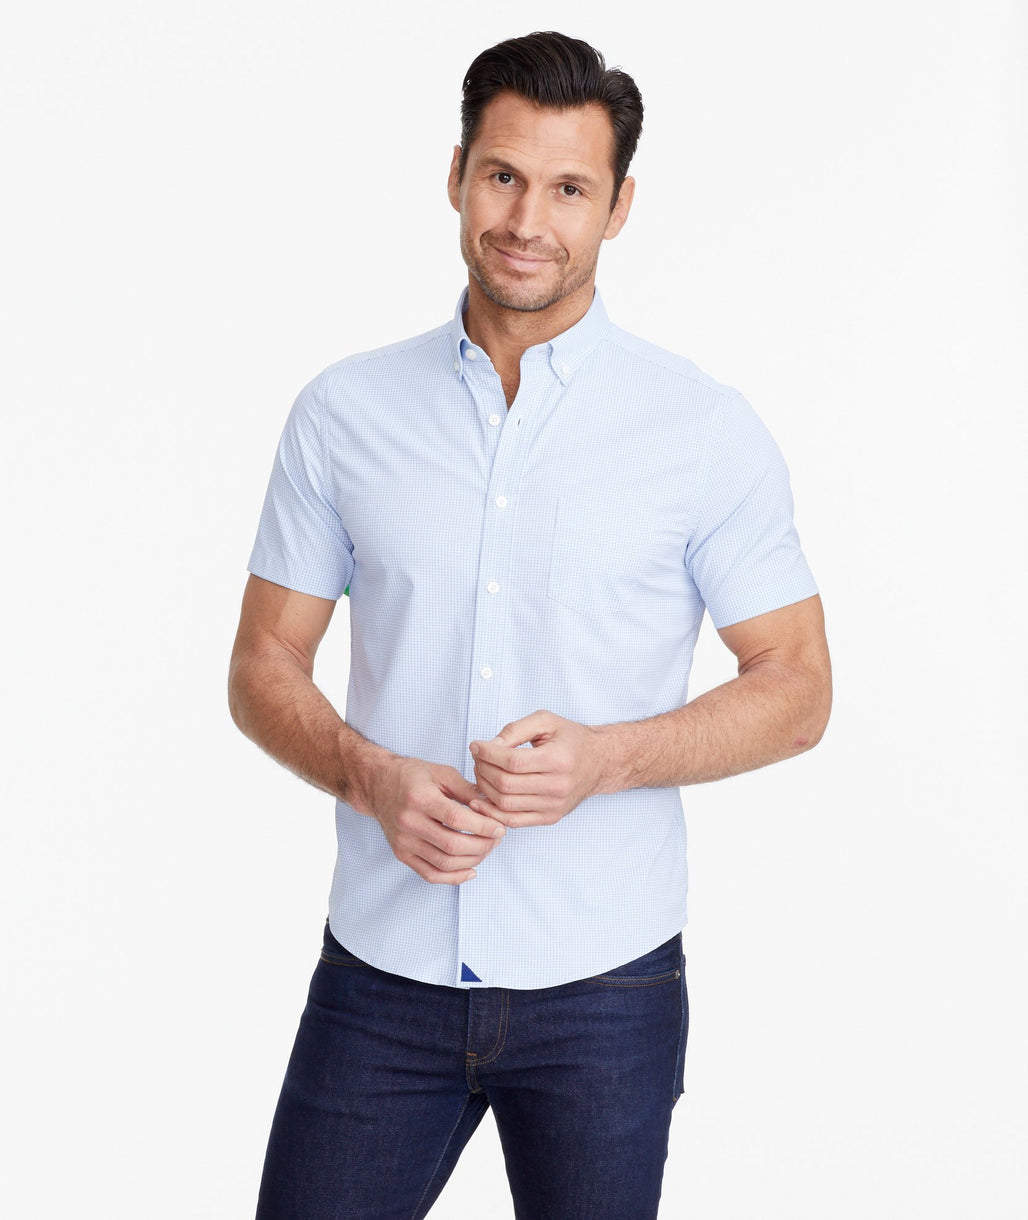 A model wearing a Light Blue Wrinkle-Free Performance+ Short-Sleeve Arcole Shirt